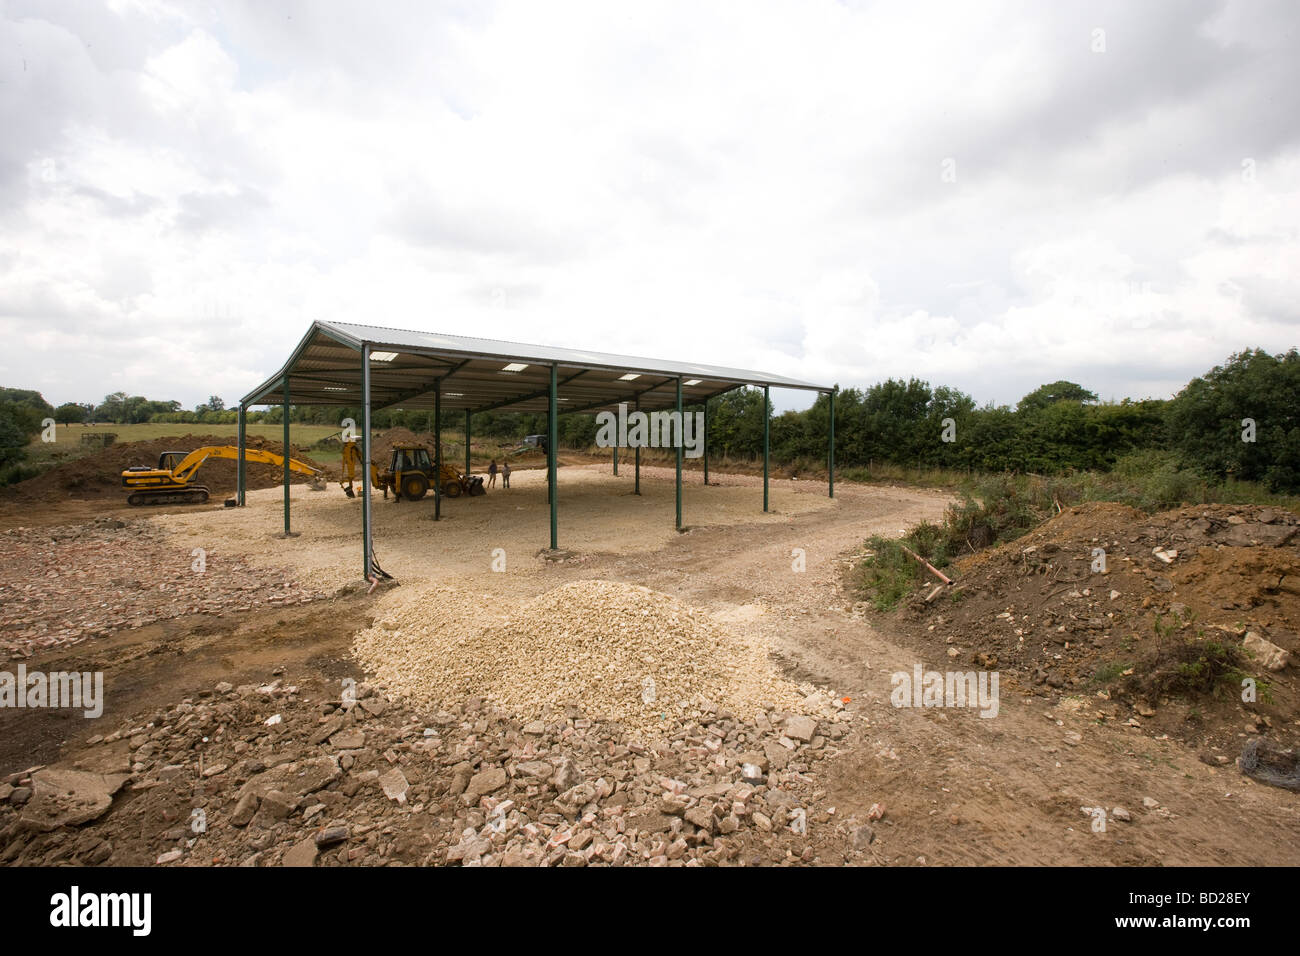 Construction Work On A New Agricultural Shed - Stock Image